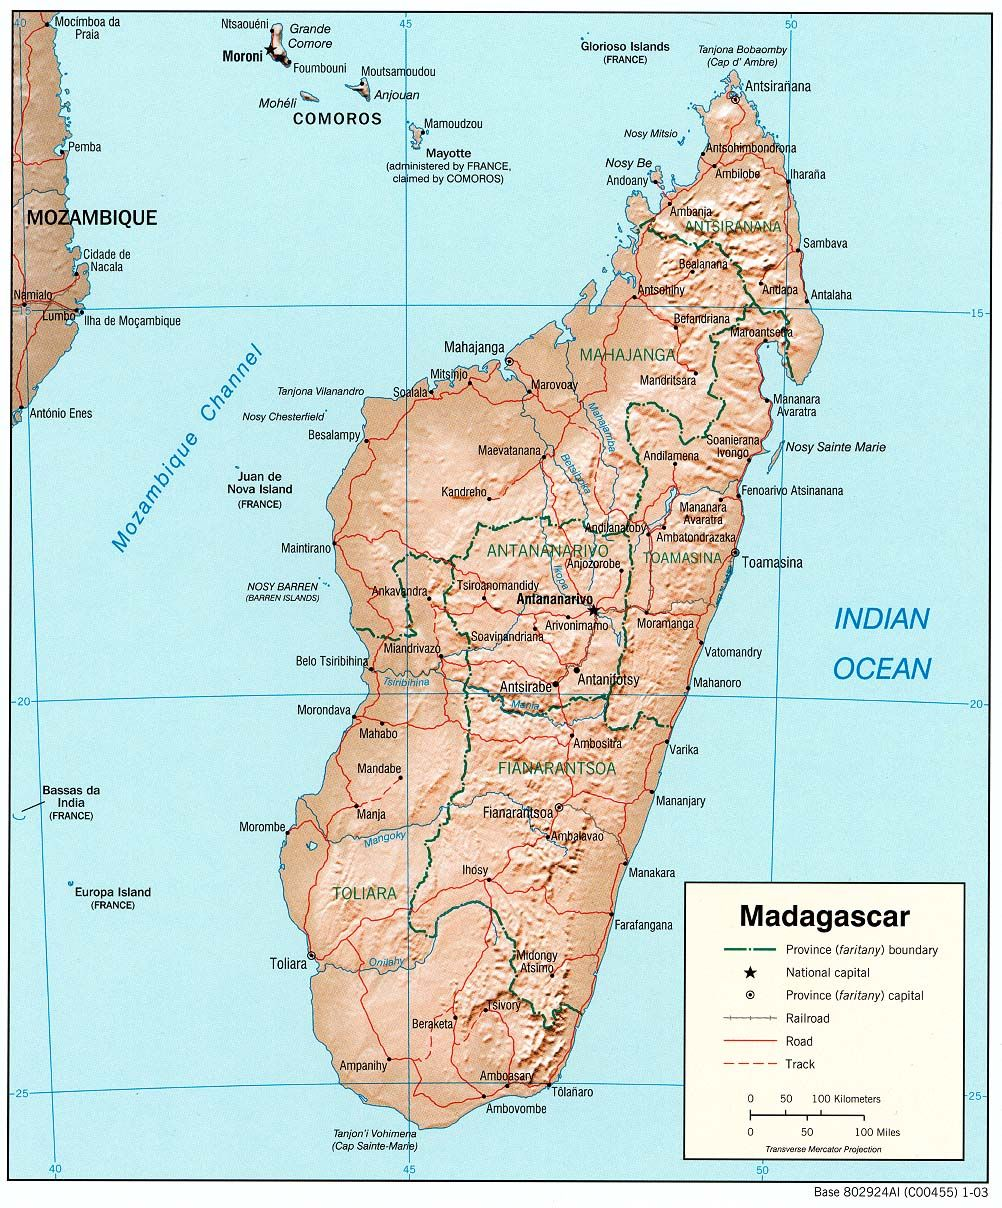 Pin by katy matthews on Madagascar think day in 2019